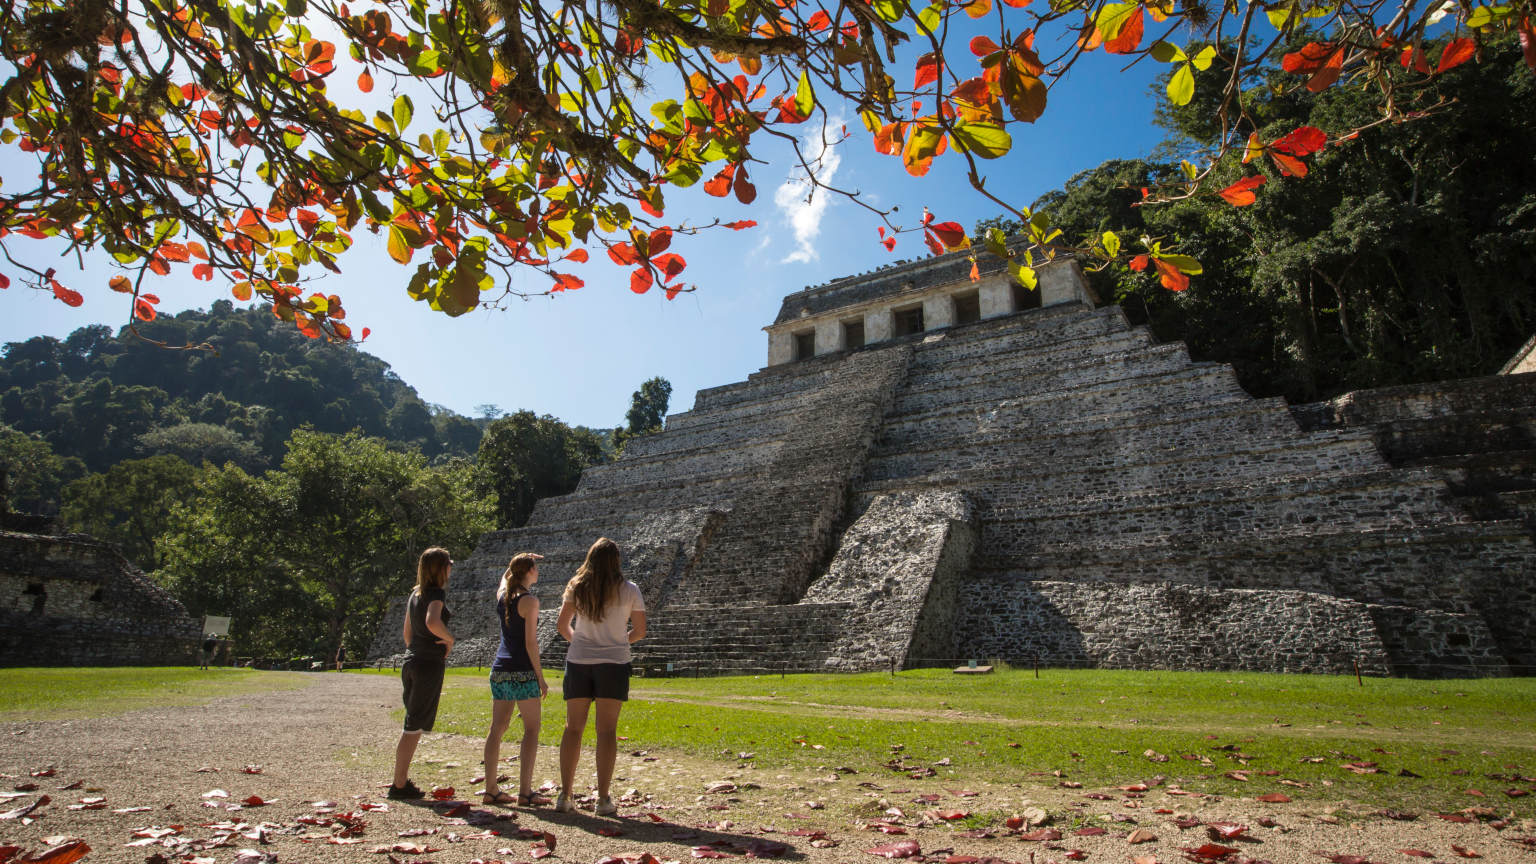 Mexico Palenque Ruins Female Travellers Under Tree - Oana Dragan